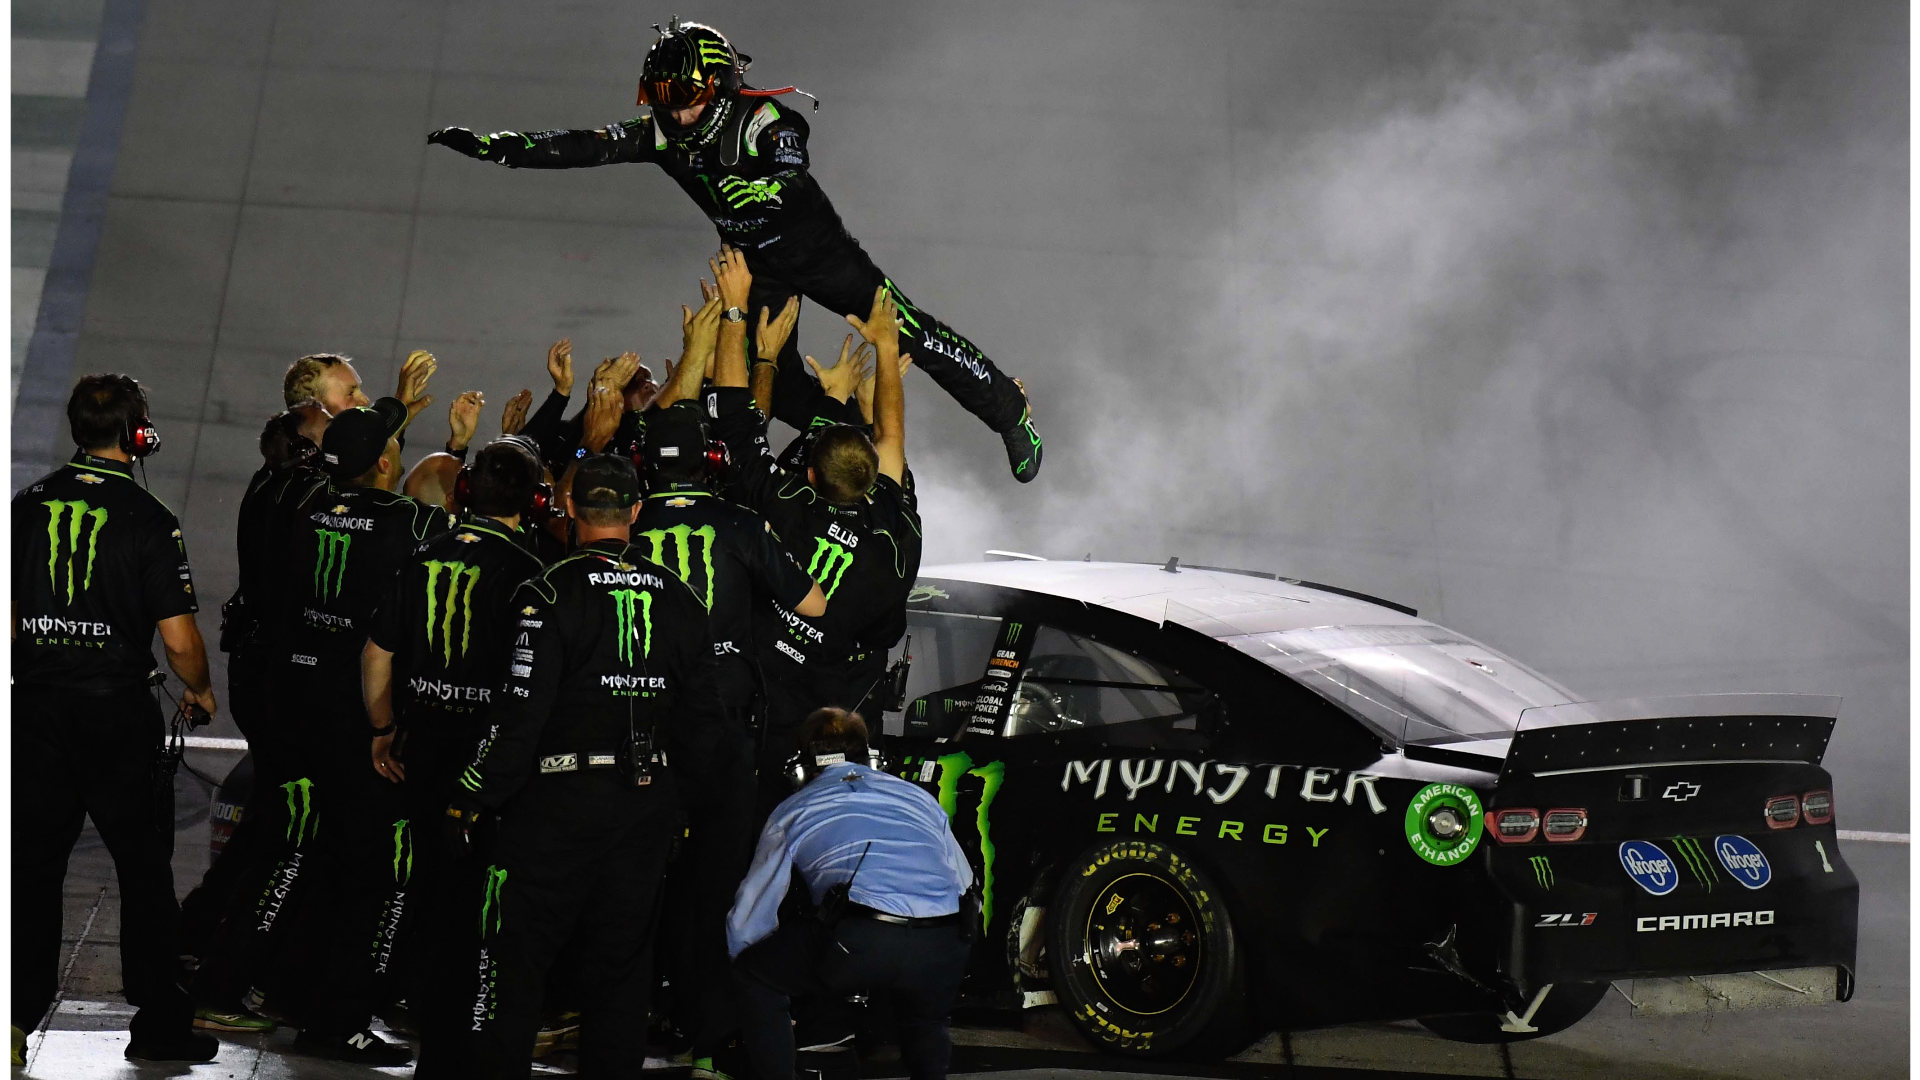 Recapping the week in NASCAR: Kurt Busch beat his brother Kyle Busch for his first victory of 2019 – NBCSports.com